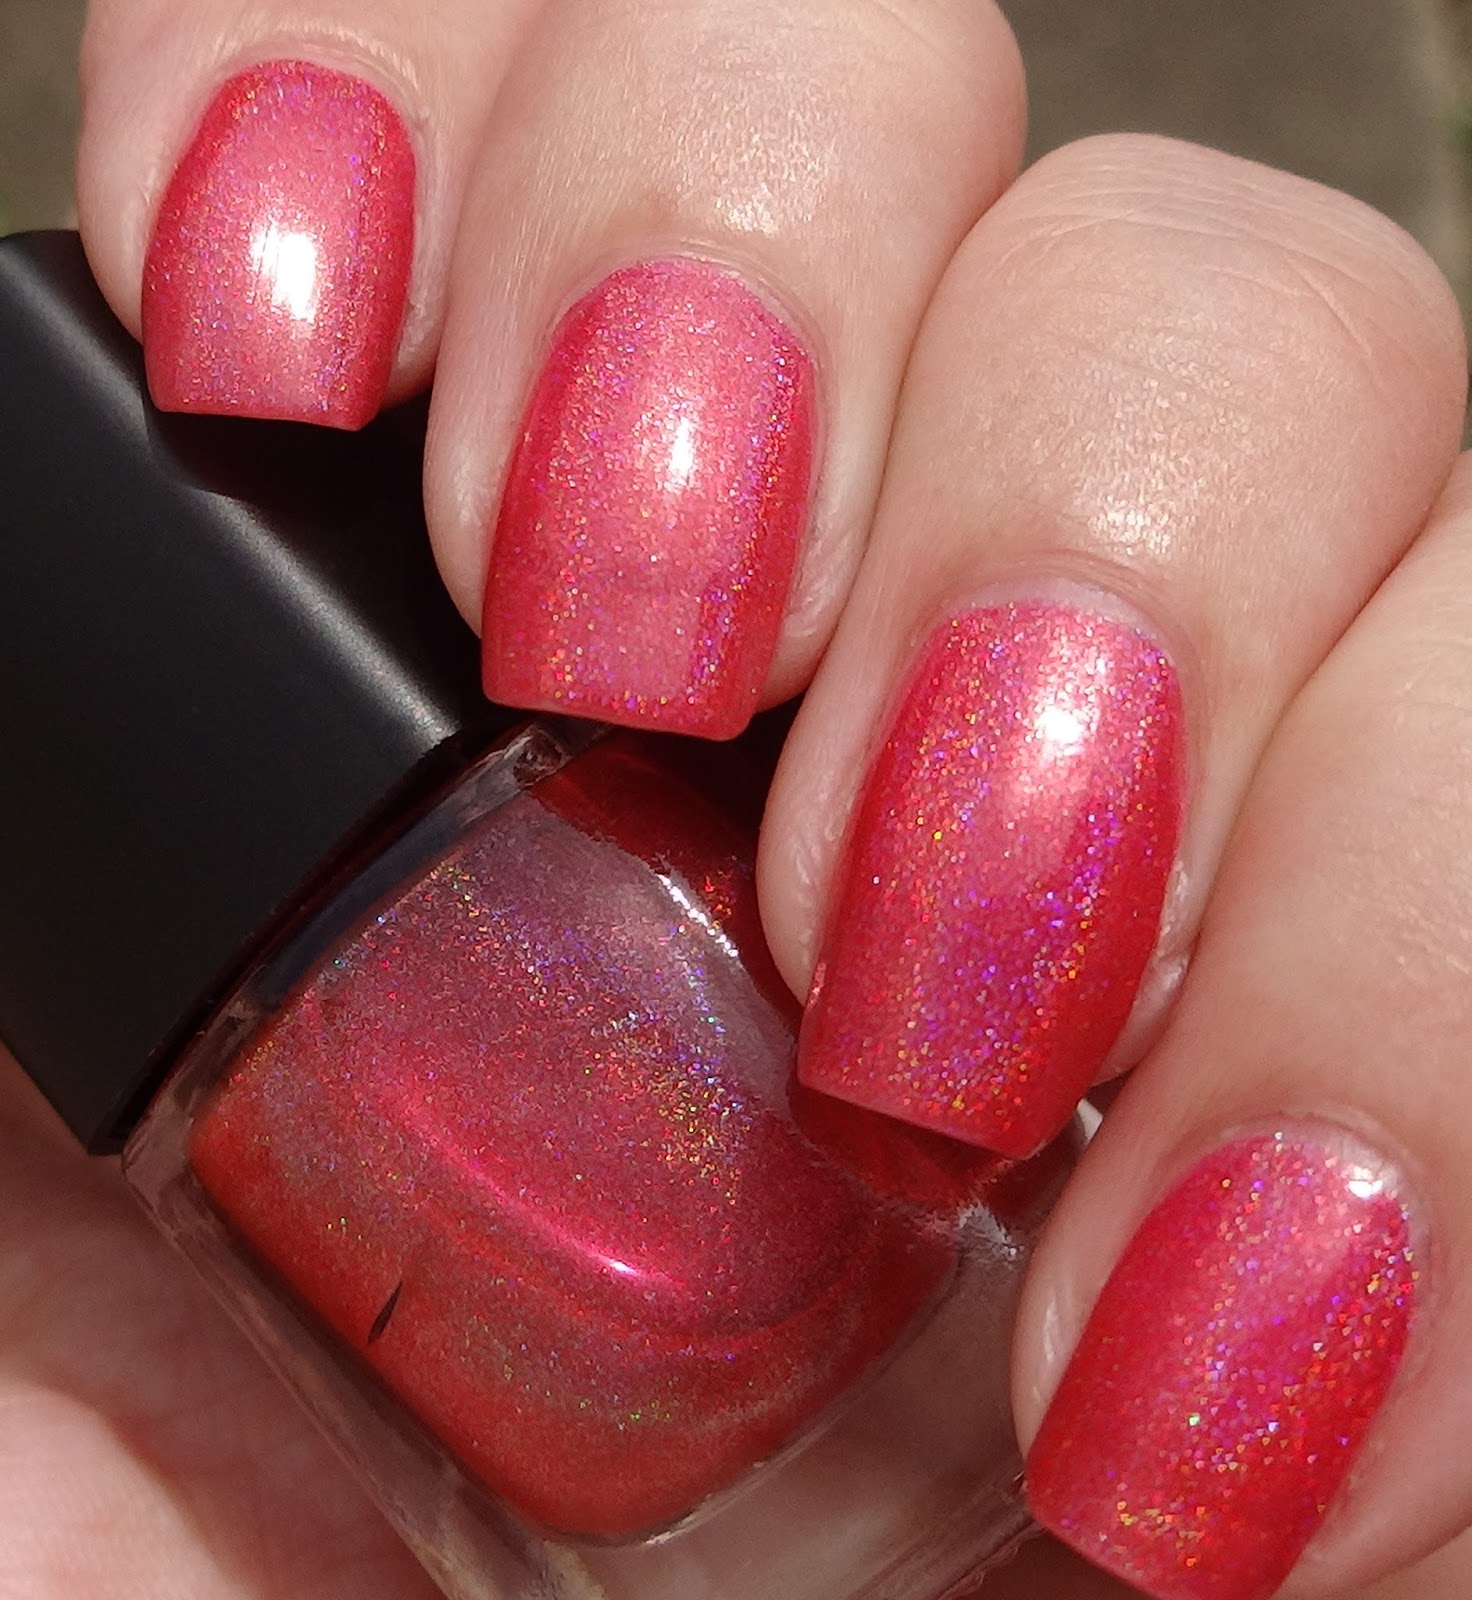 Super Black Holographic Nail Polish Uk: Wendy's Delights: Born Pretty Store Red Holographic Nail